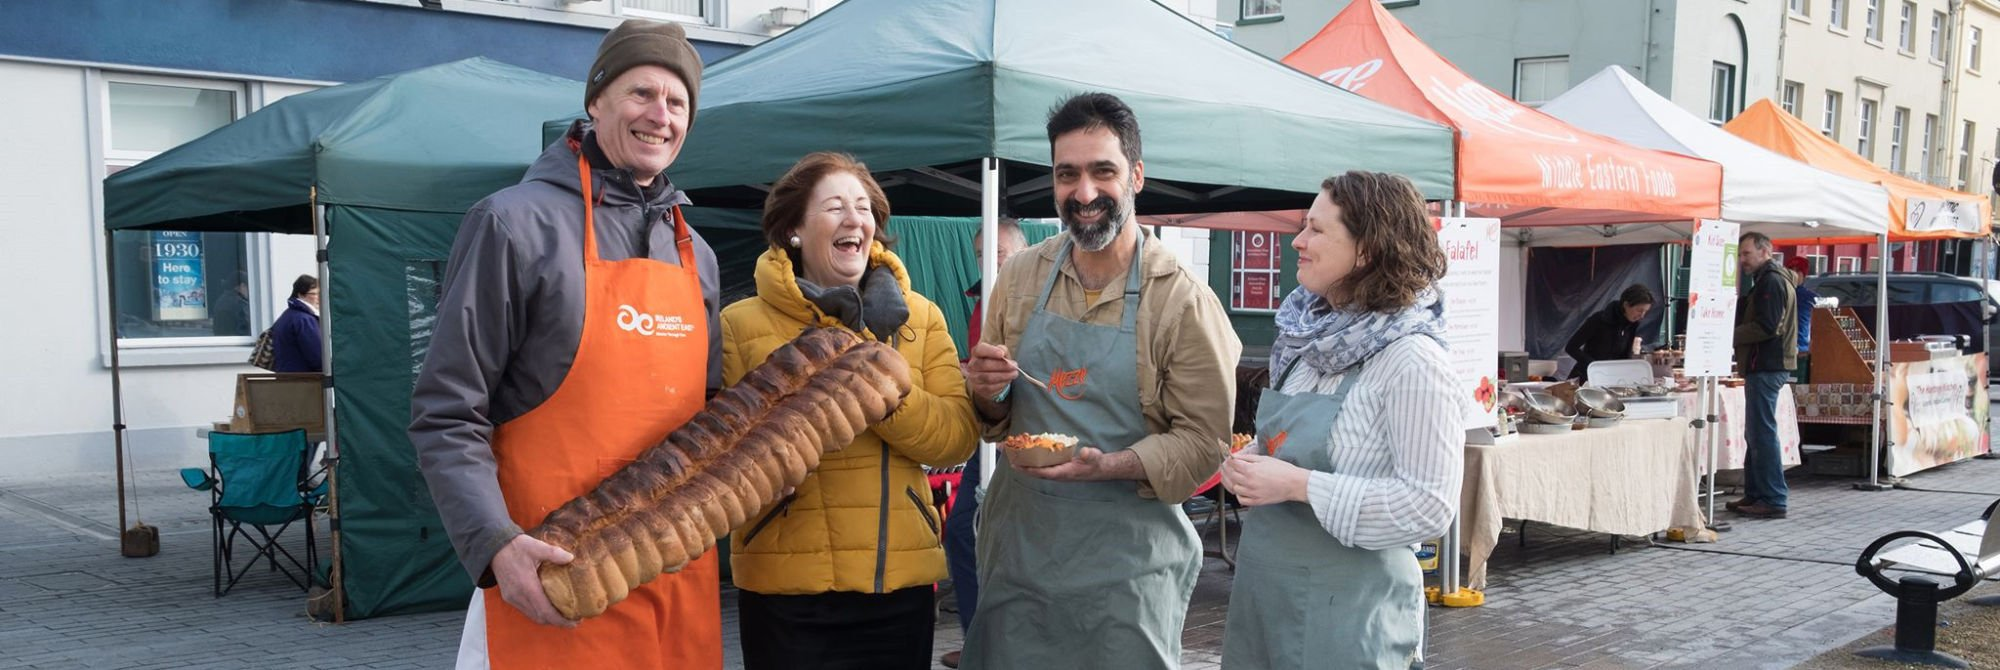 Discover a real taste of Waterford